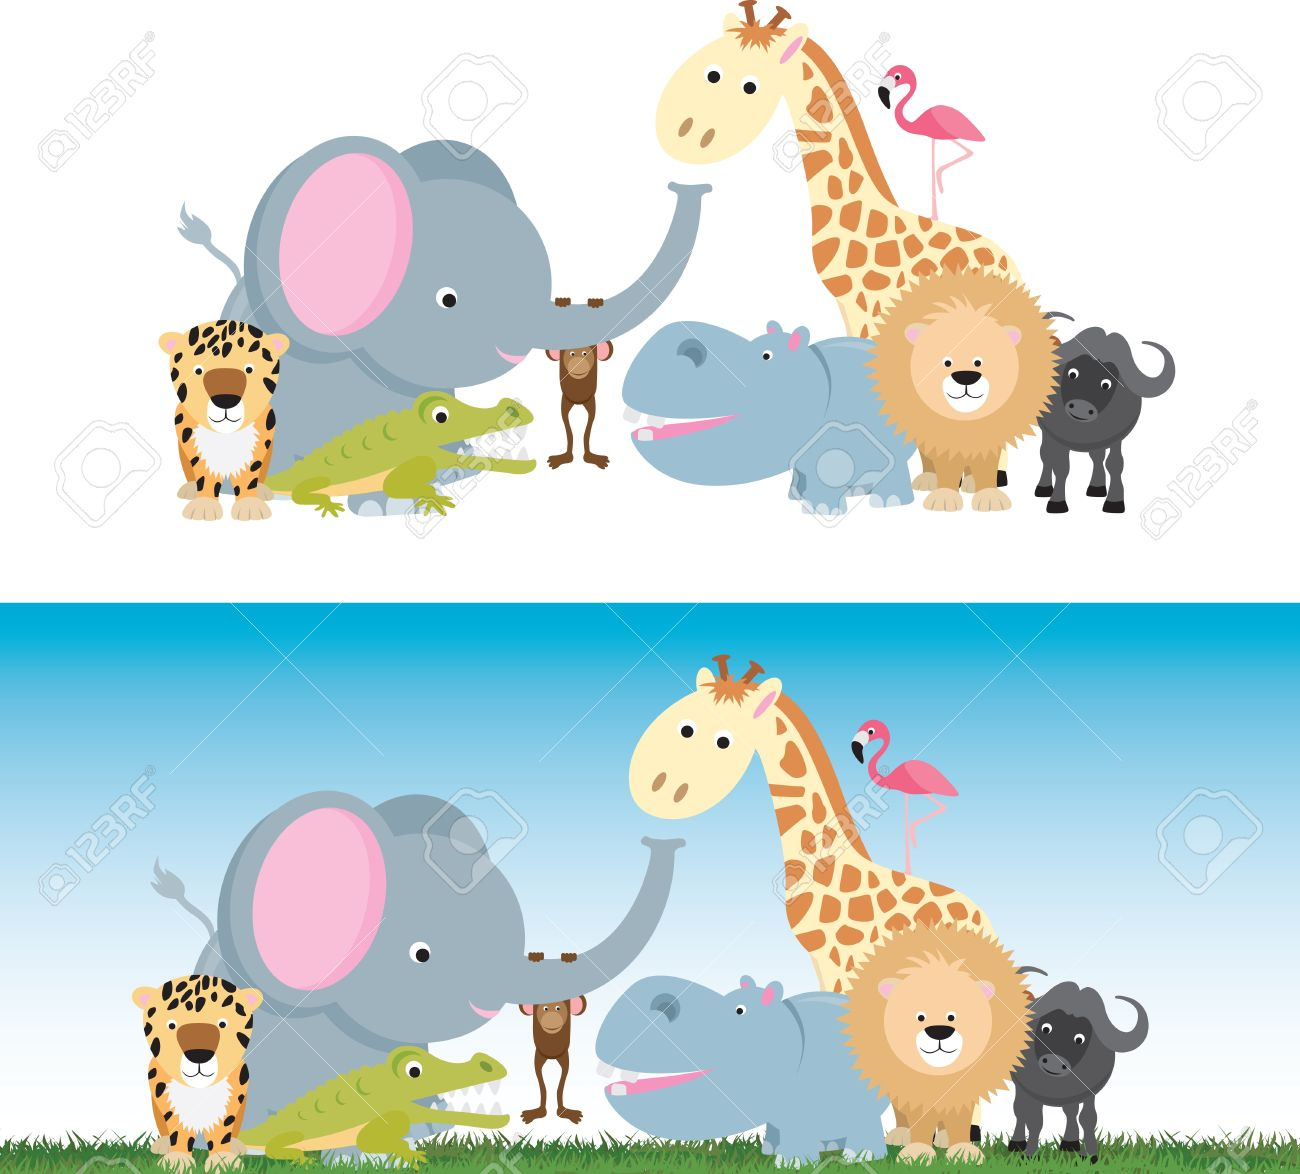 selection of wild animal cartoons including elephants, cats and a monkey Stock Vector - 9930813